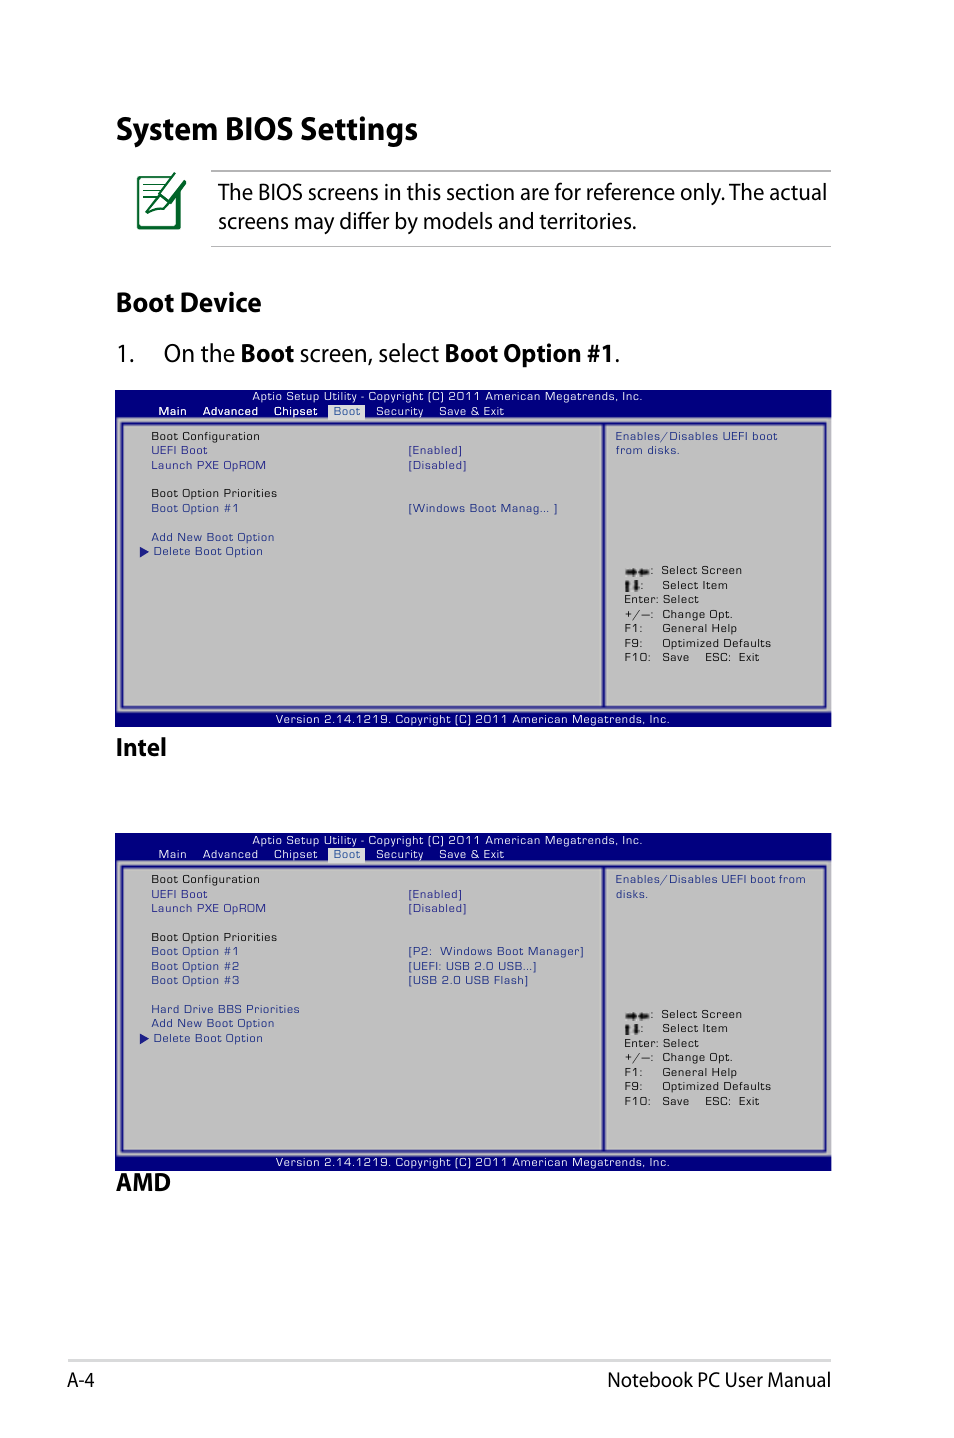 System bios settings, Boot device, On the boot screen